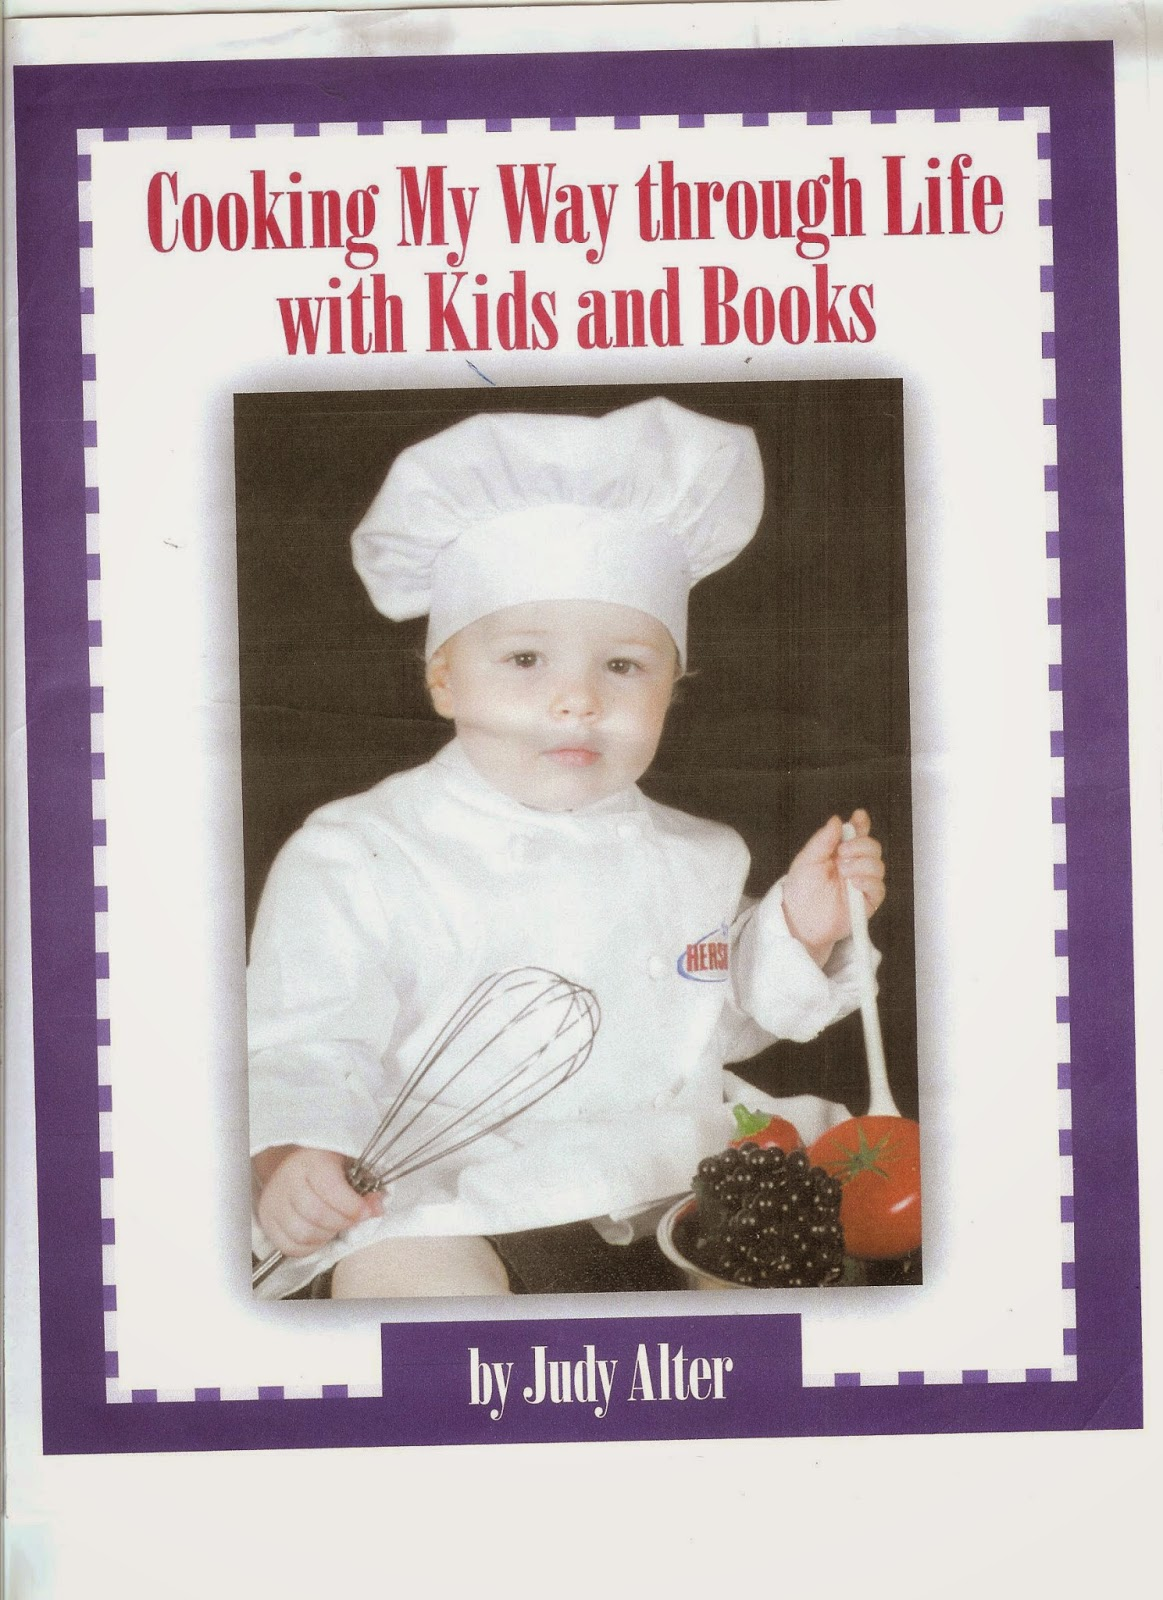 http://www.amazon.com/Cooking-through-Books-Stars-Texas/dp/1933337338/ref=sr_1_1?s=books&ie=UTF8&qid=1403144360&sr=1-1&keywords=cooking+my+way+through+life+with+kids+and+books